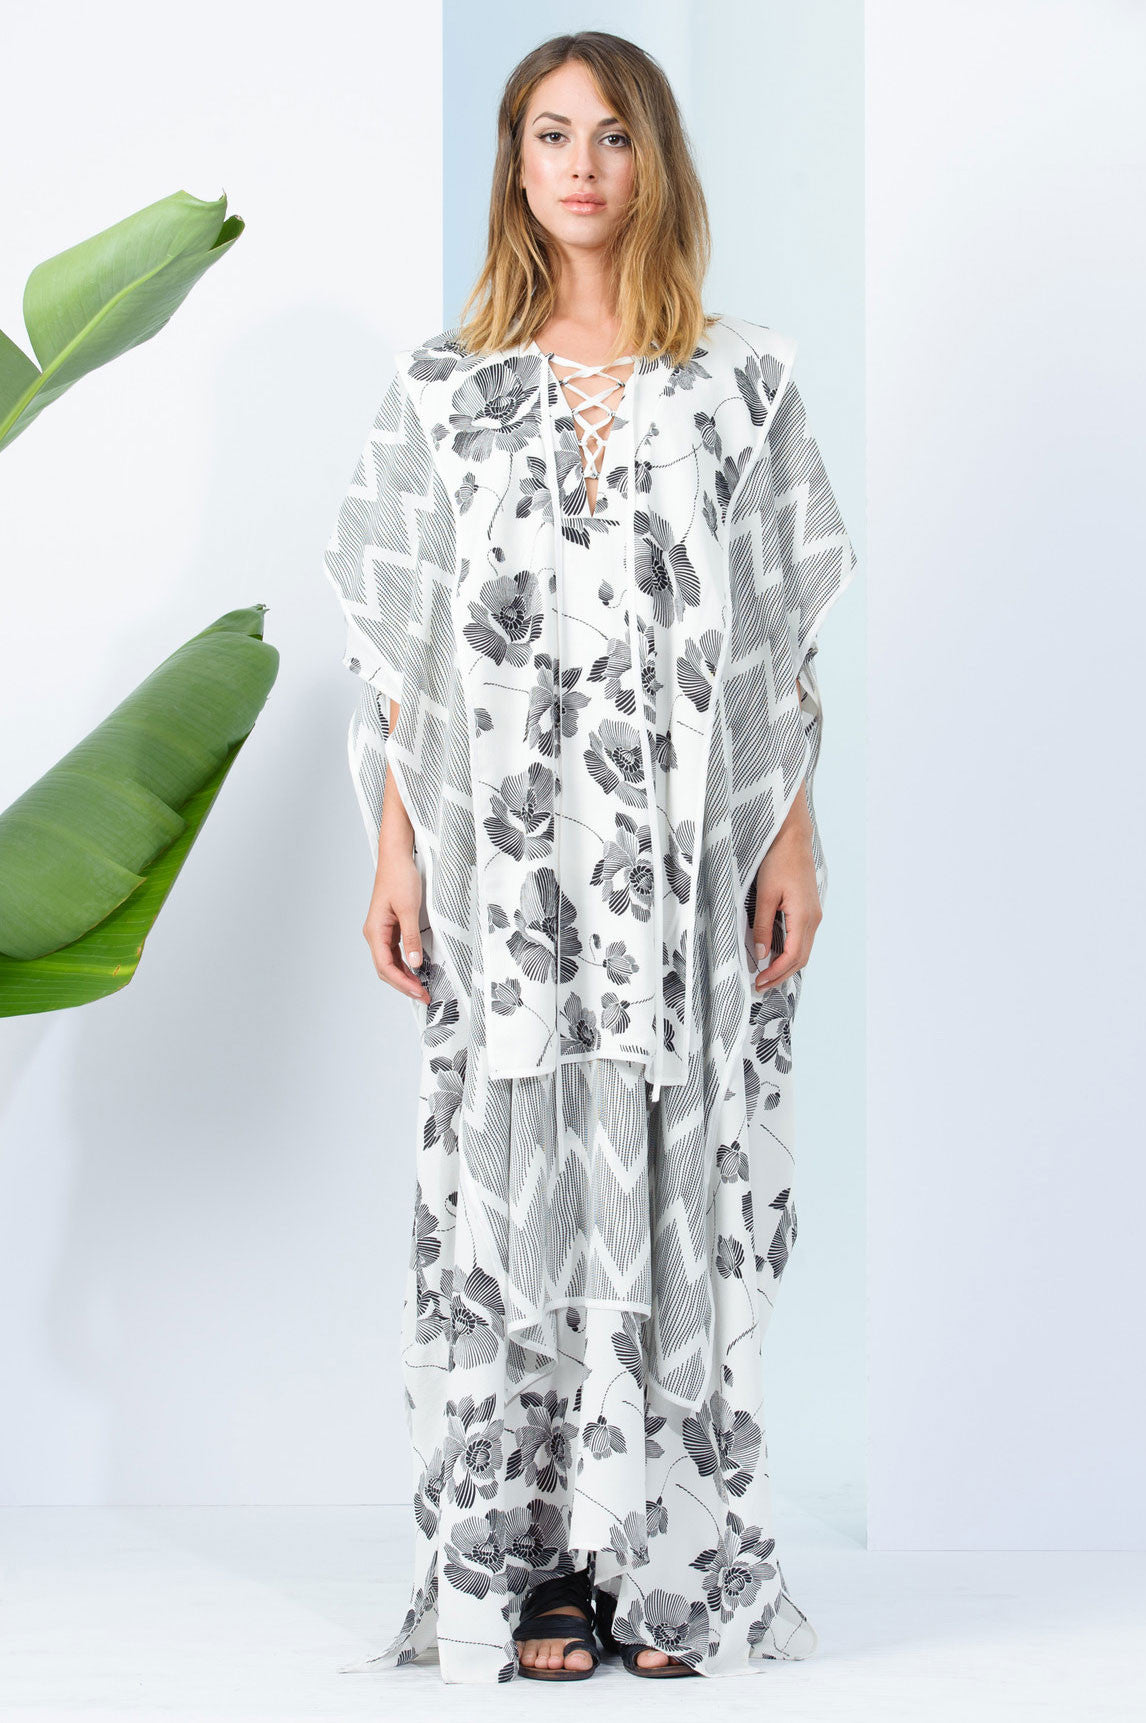 Black and white print, lace up long caftan dress. Front view